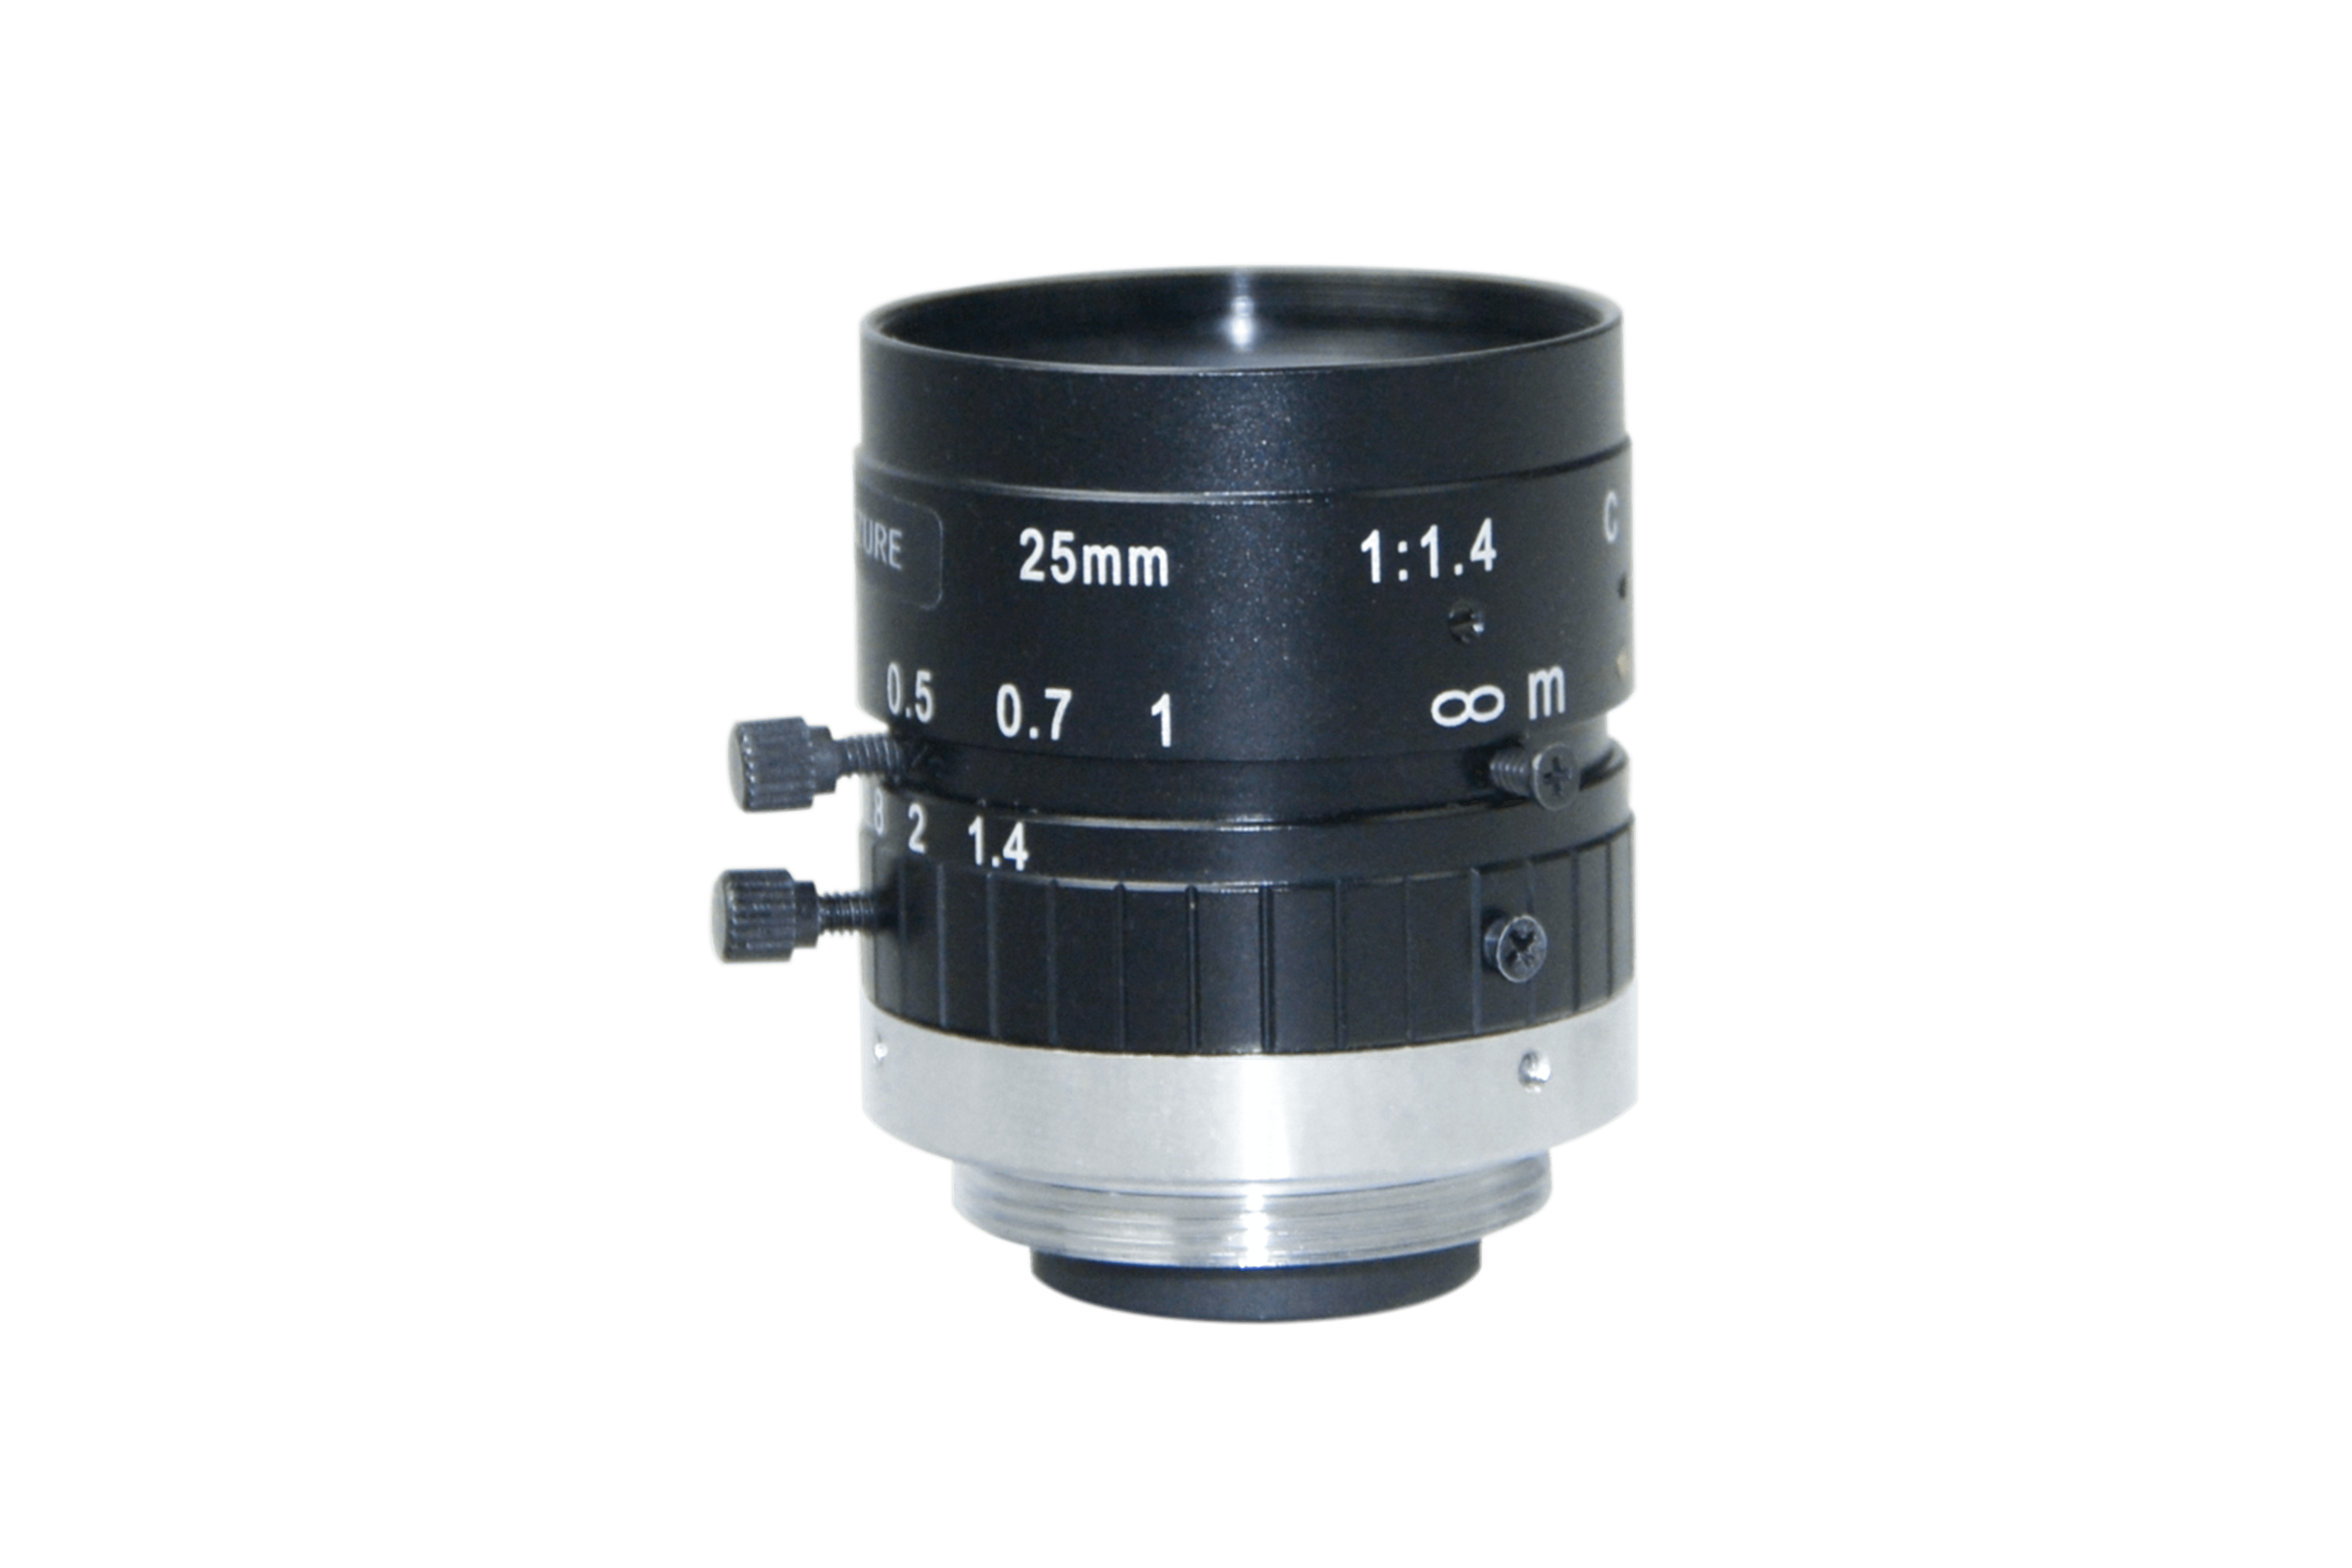 Azure C-Mount 25mm Machine Vision Lens